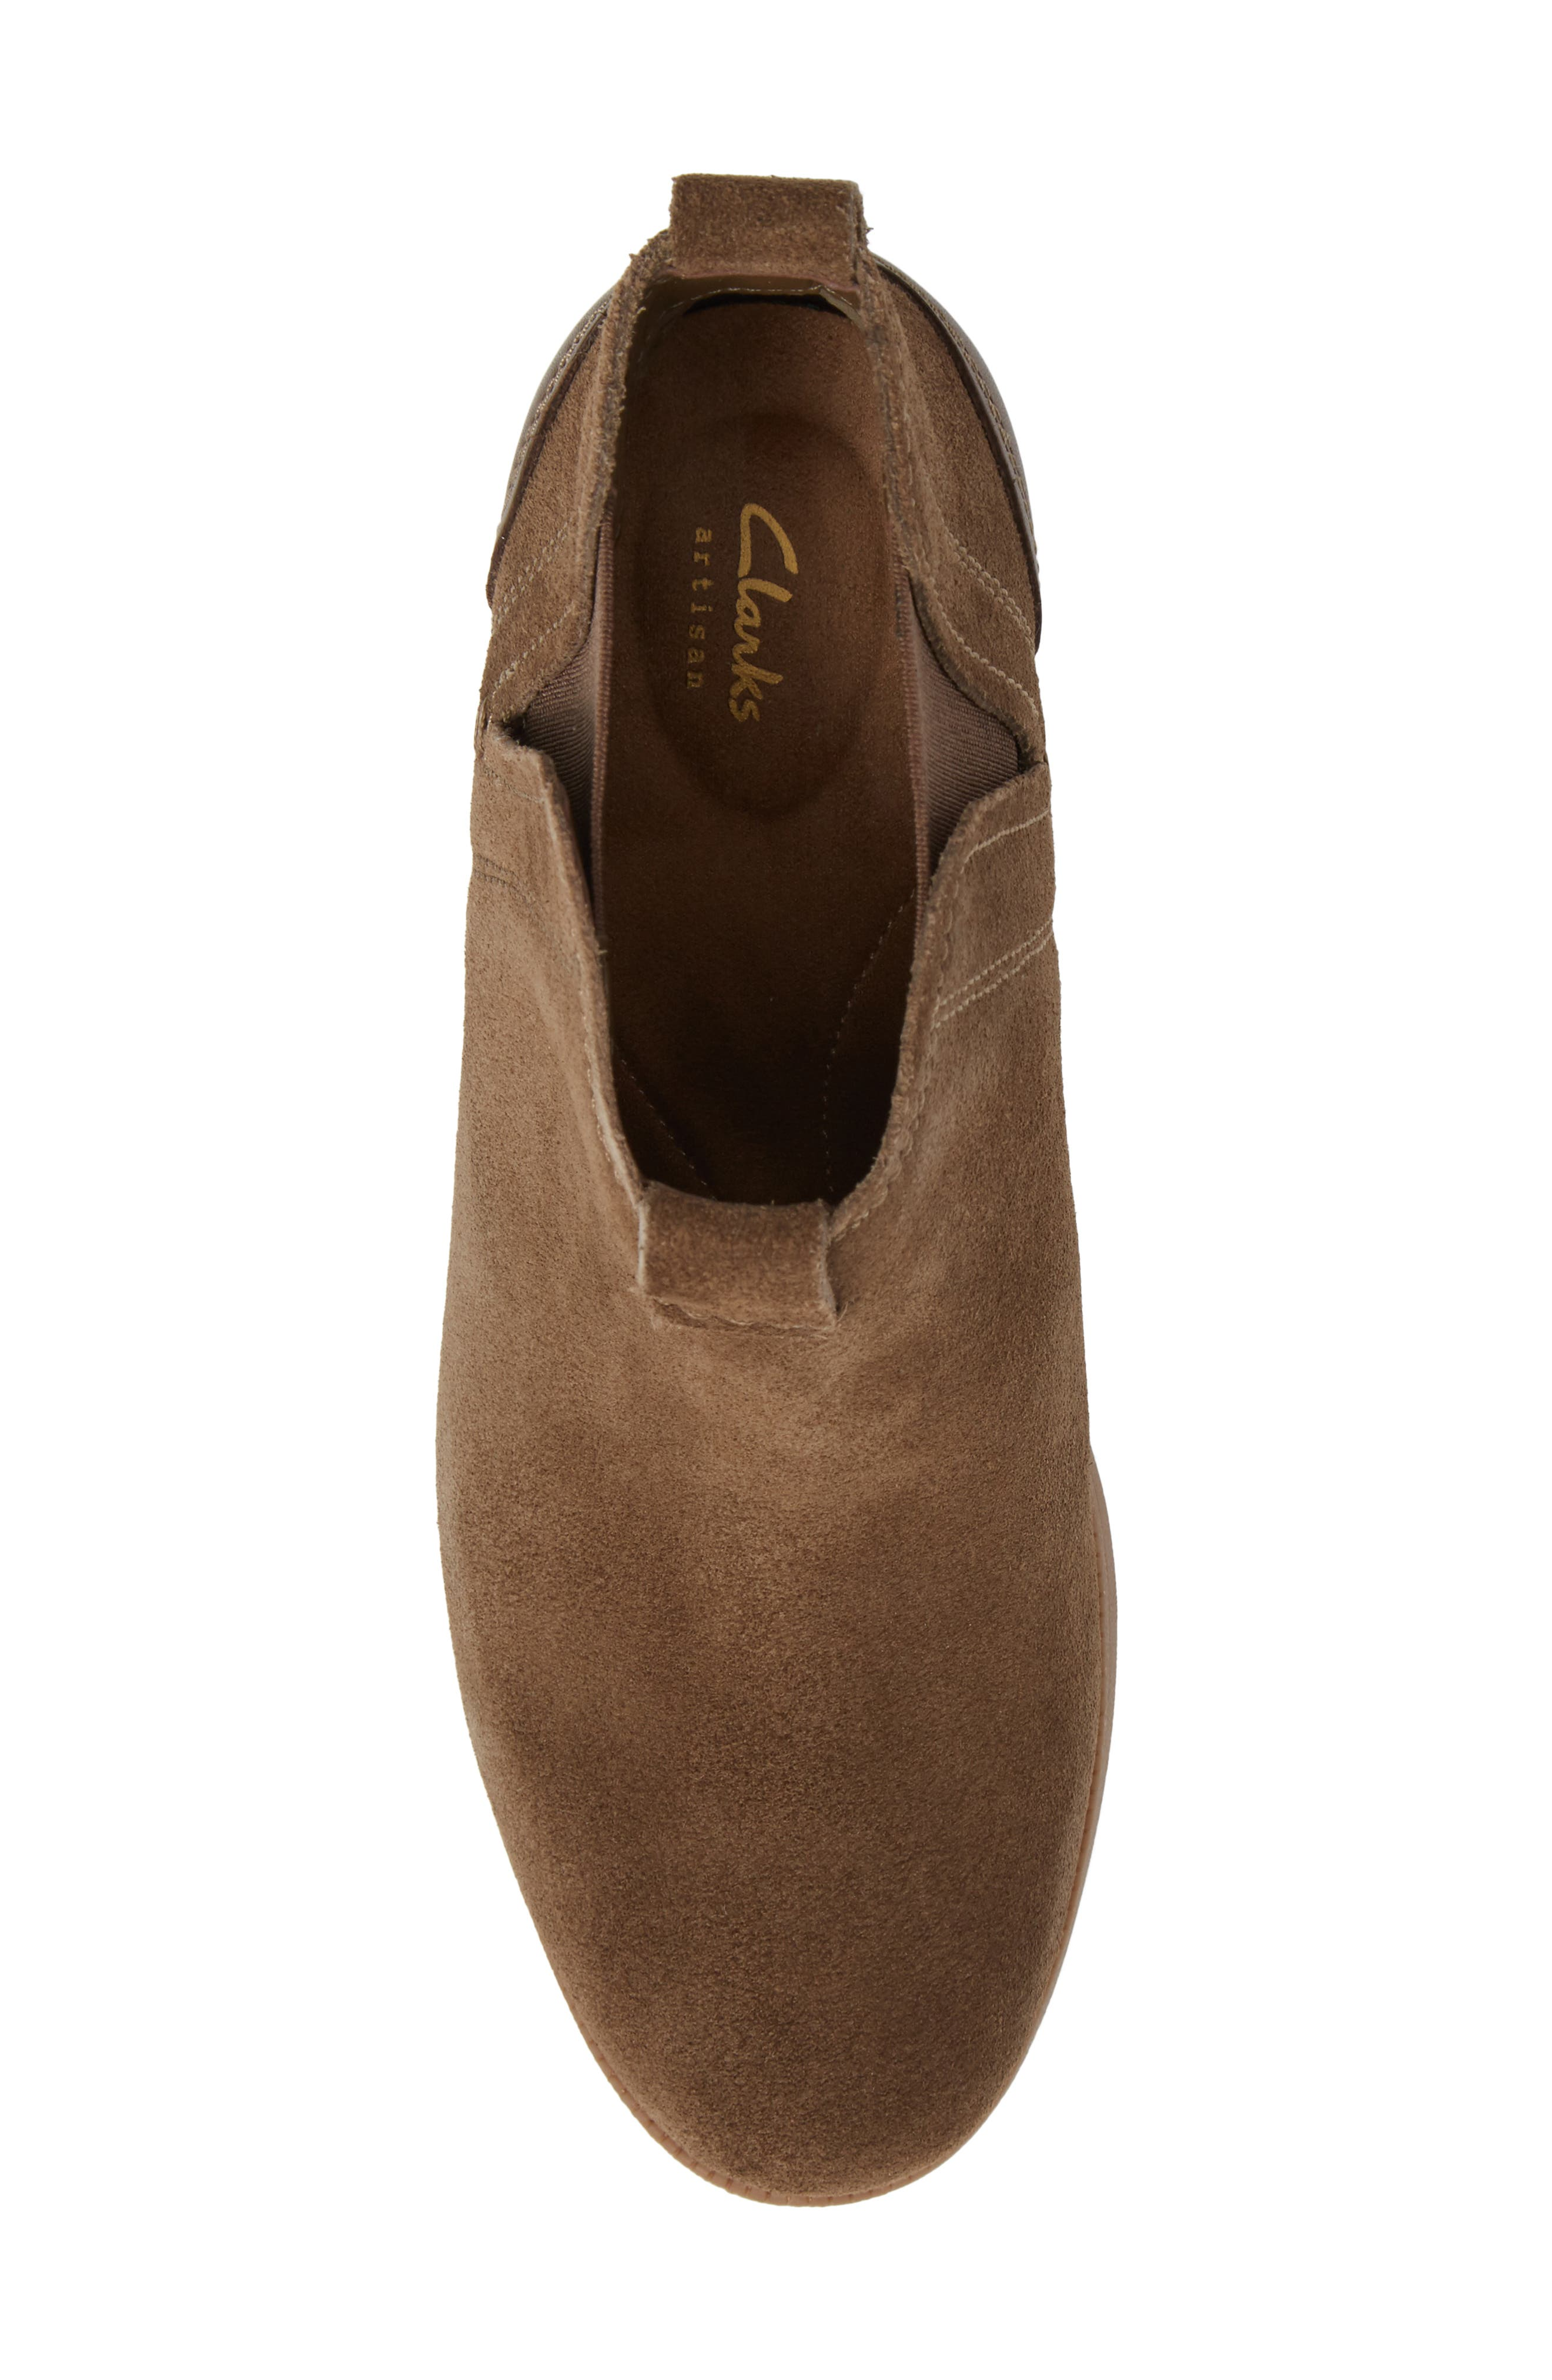 Maypearl Daisy Bootie,                             Alternate thumbnail 15, color,